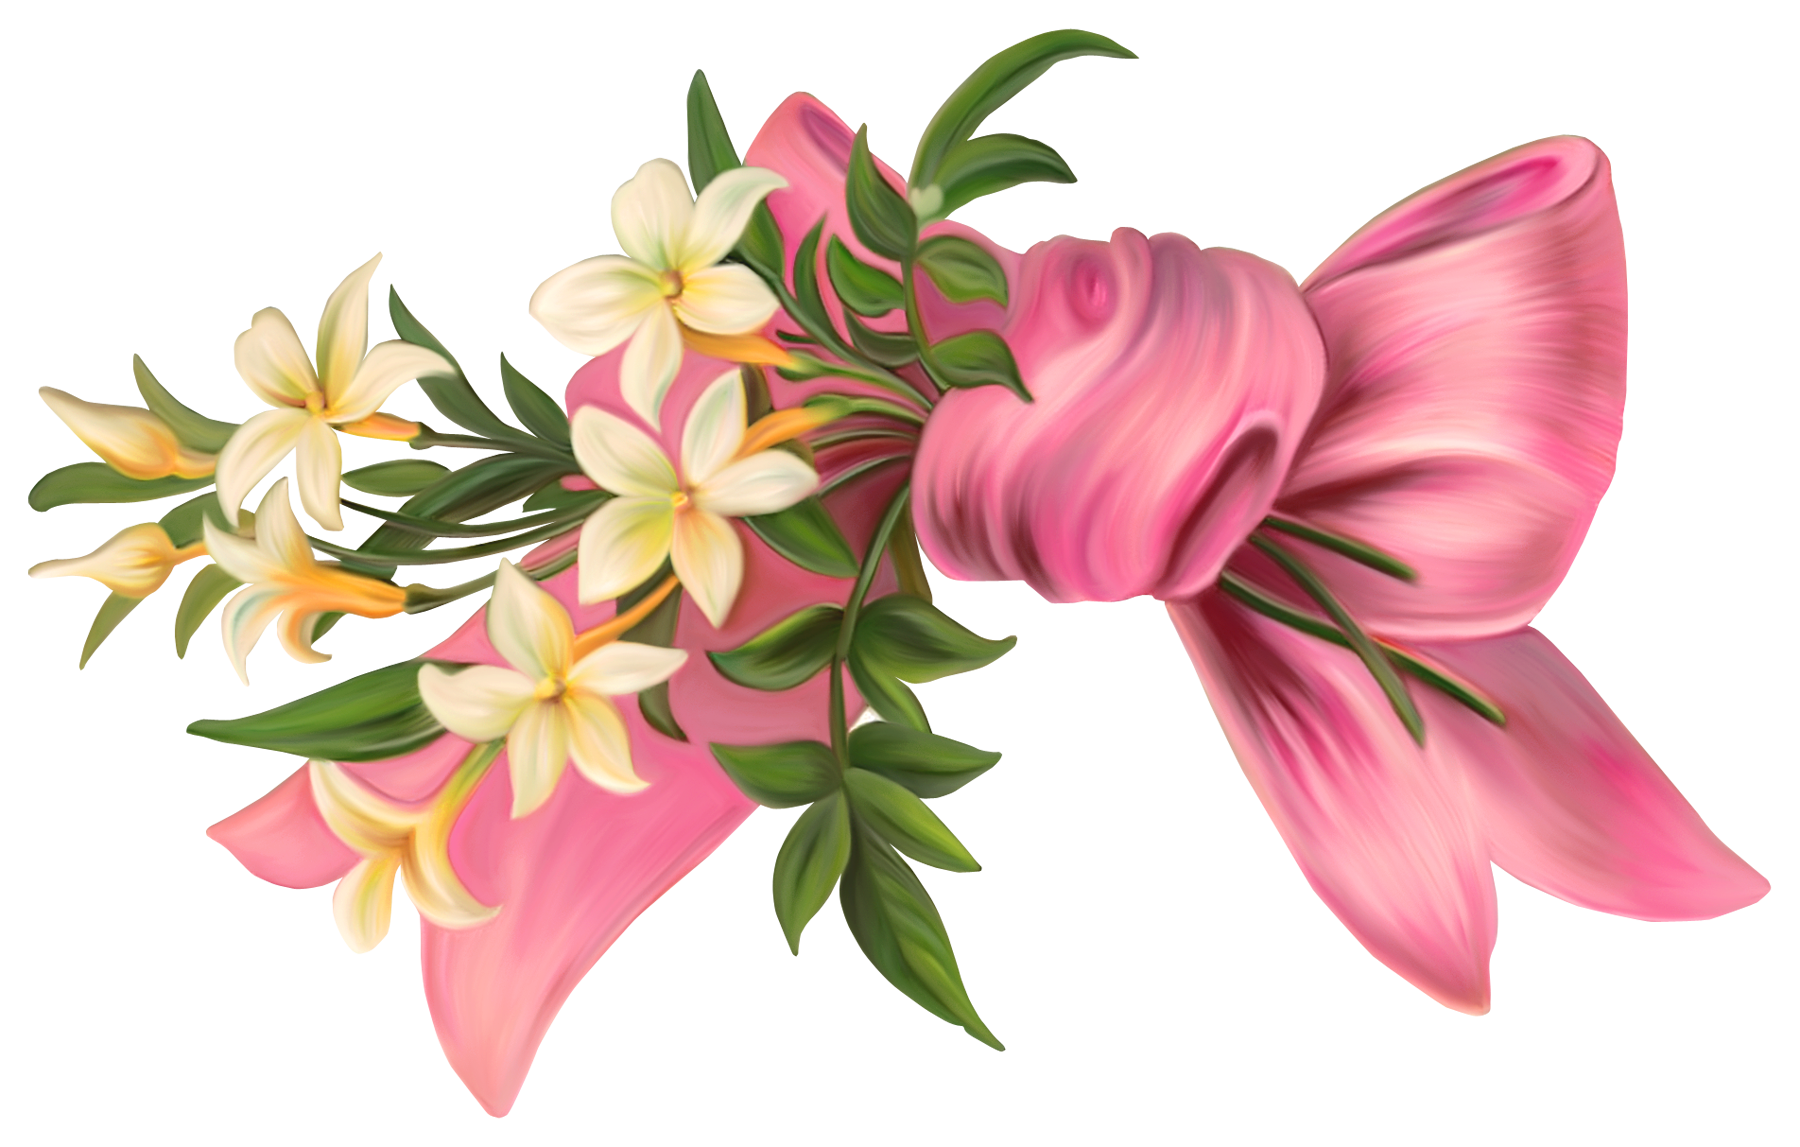 Pink lily flower transparent image the cliparts - Download Png Image Flowers Png 8